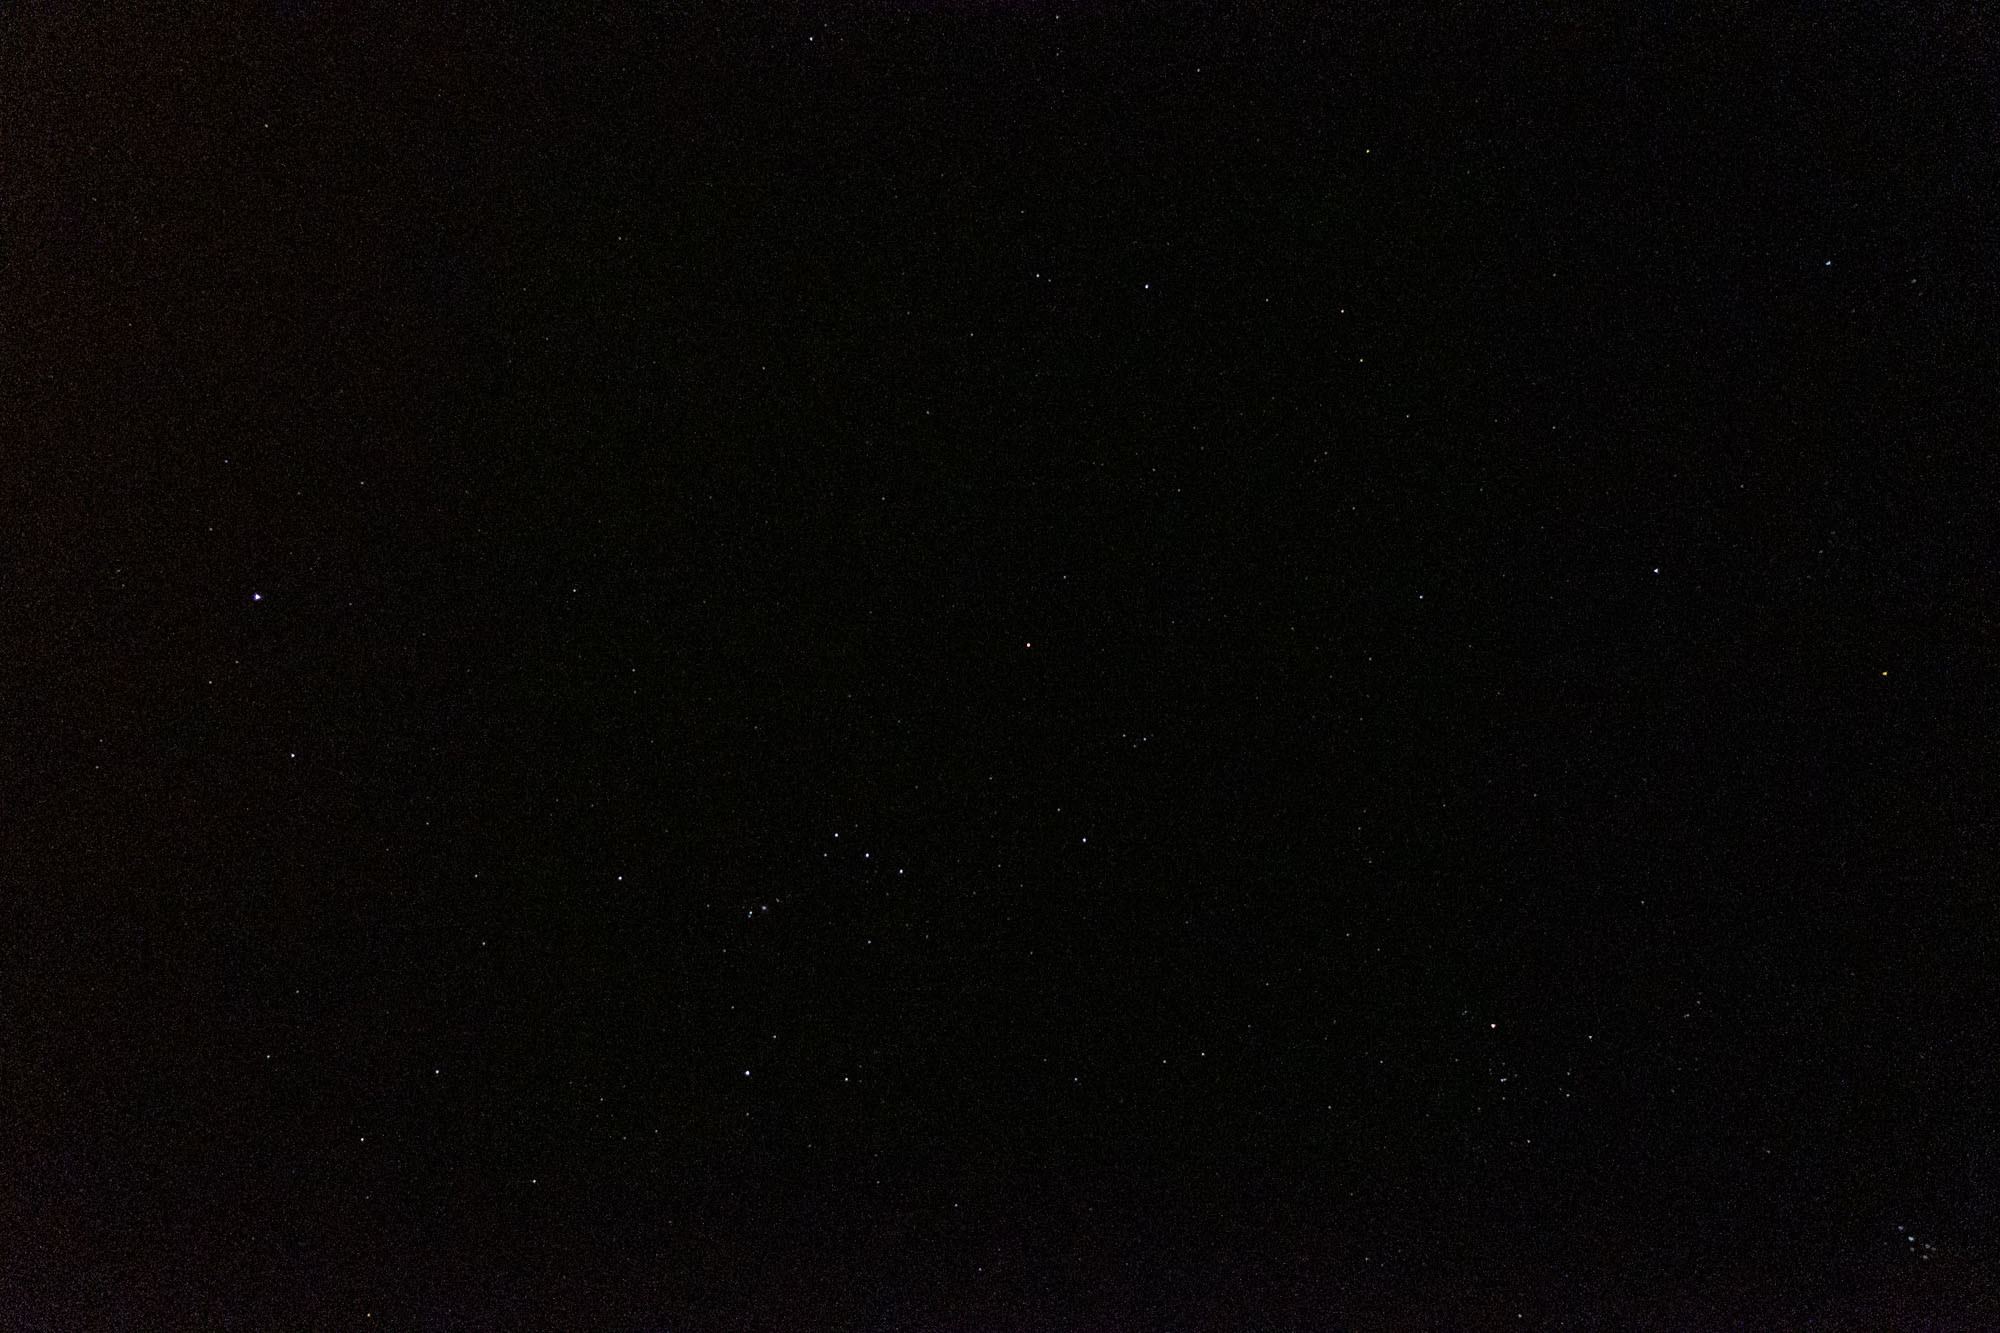 Stars from little petra